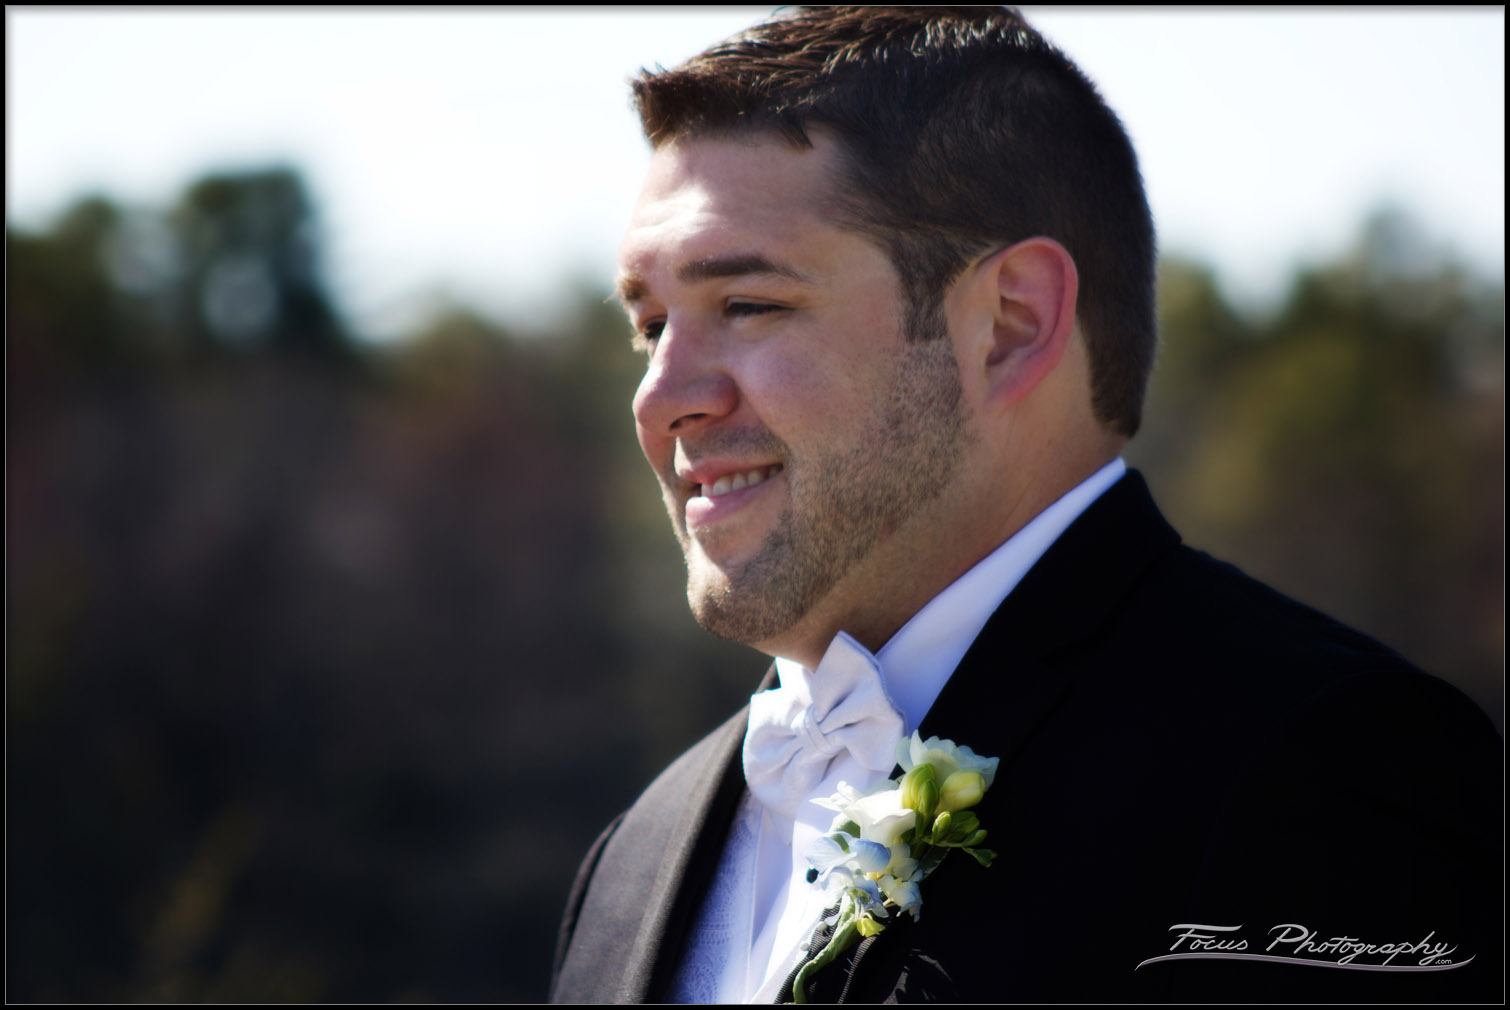 groom sees bride during ceremony